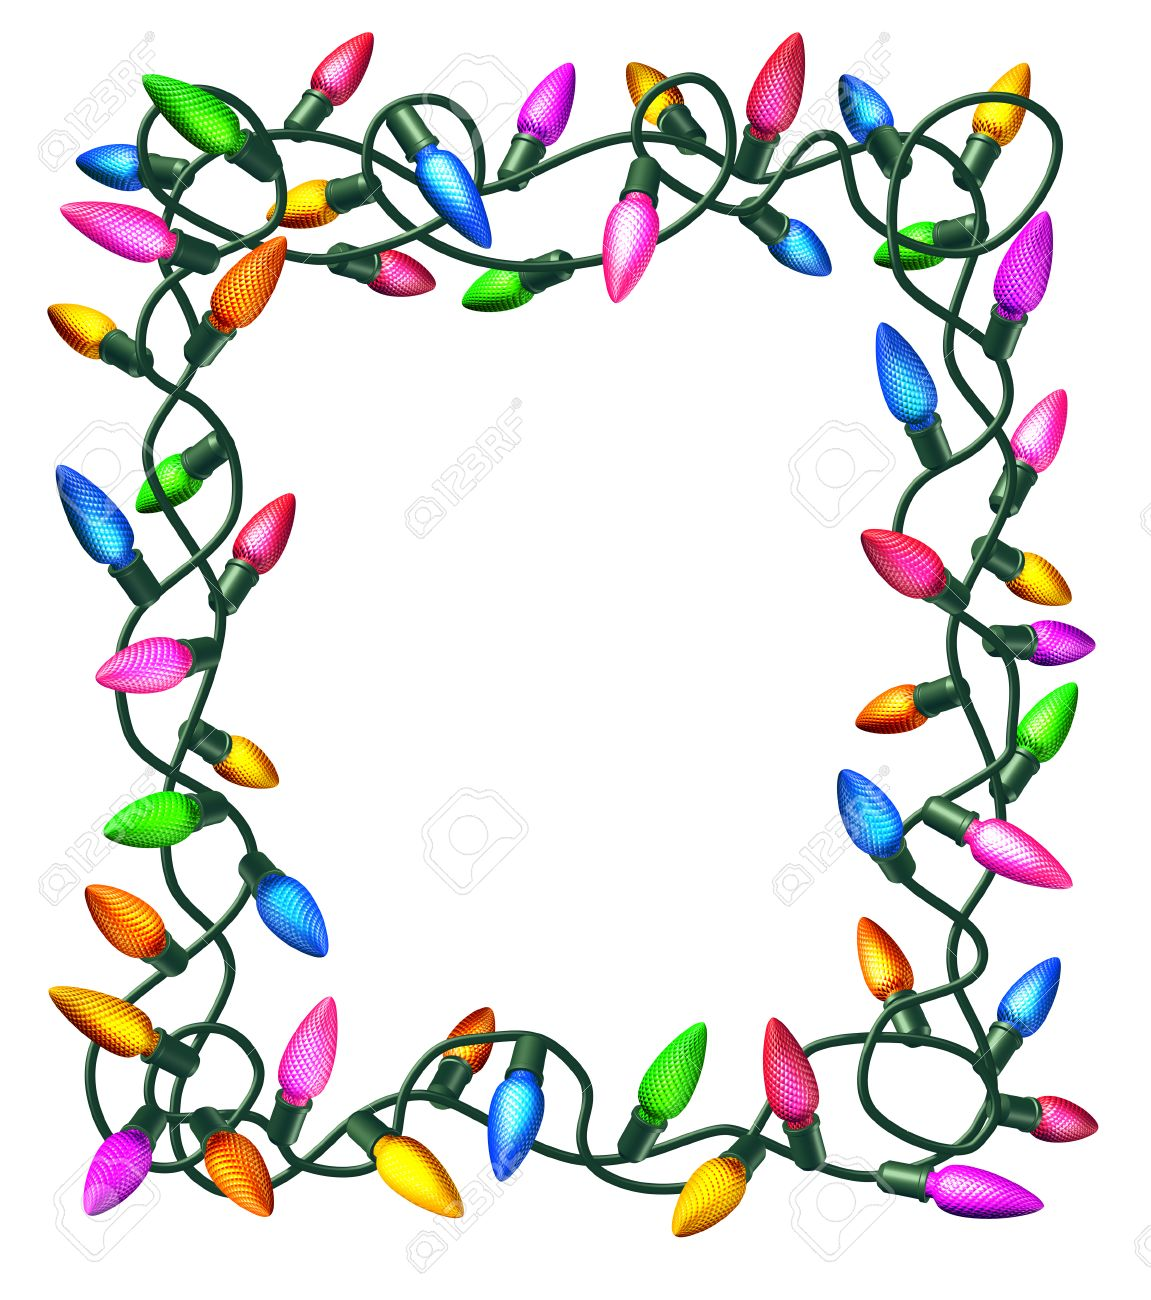 Christmas lights border - Christmas Lights Frame Isolated On A White Background As A Decorated Border With Illuminated Colourful Bulbs